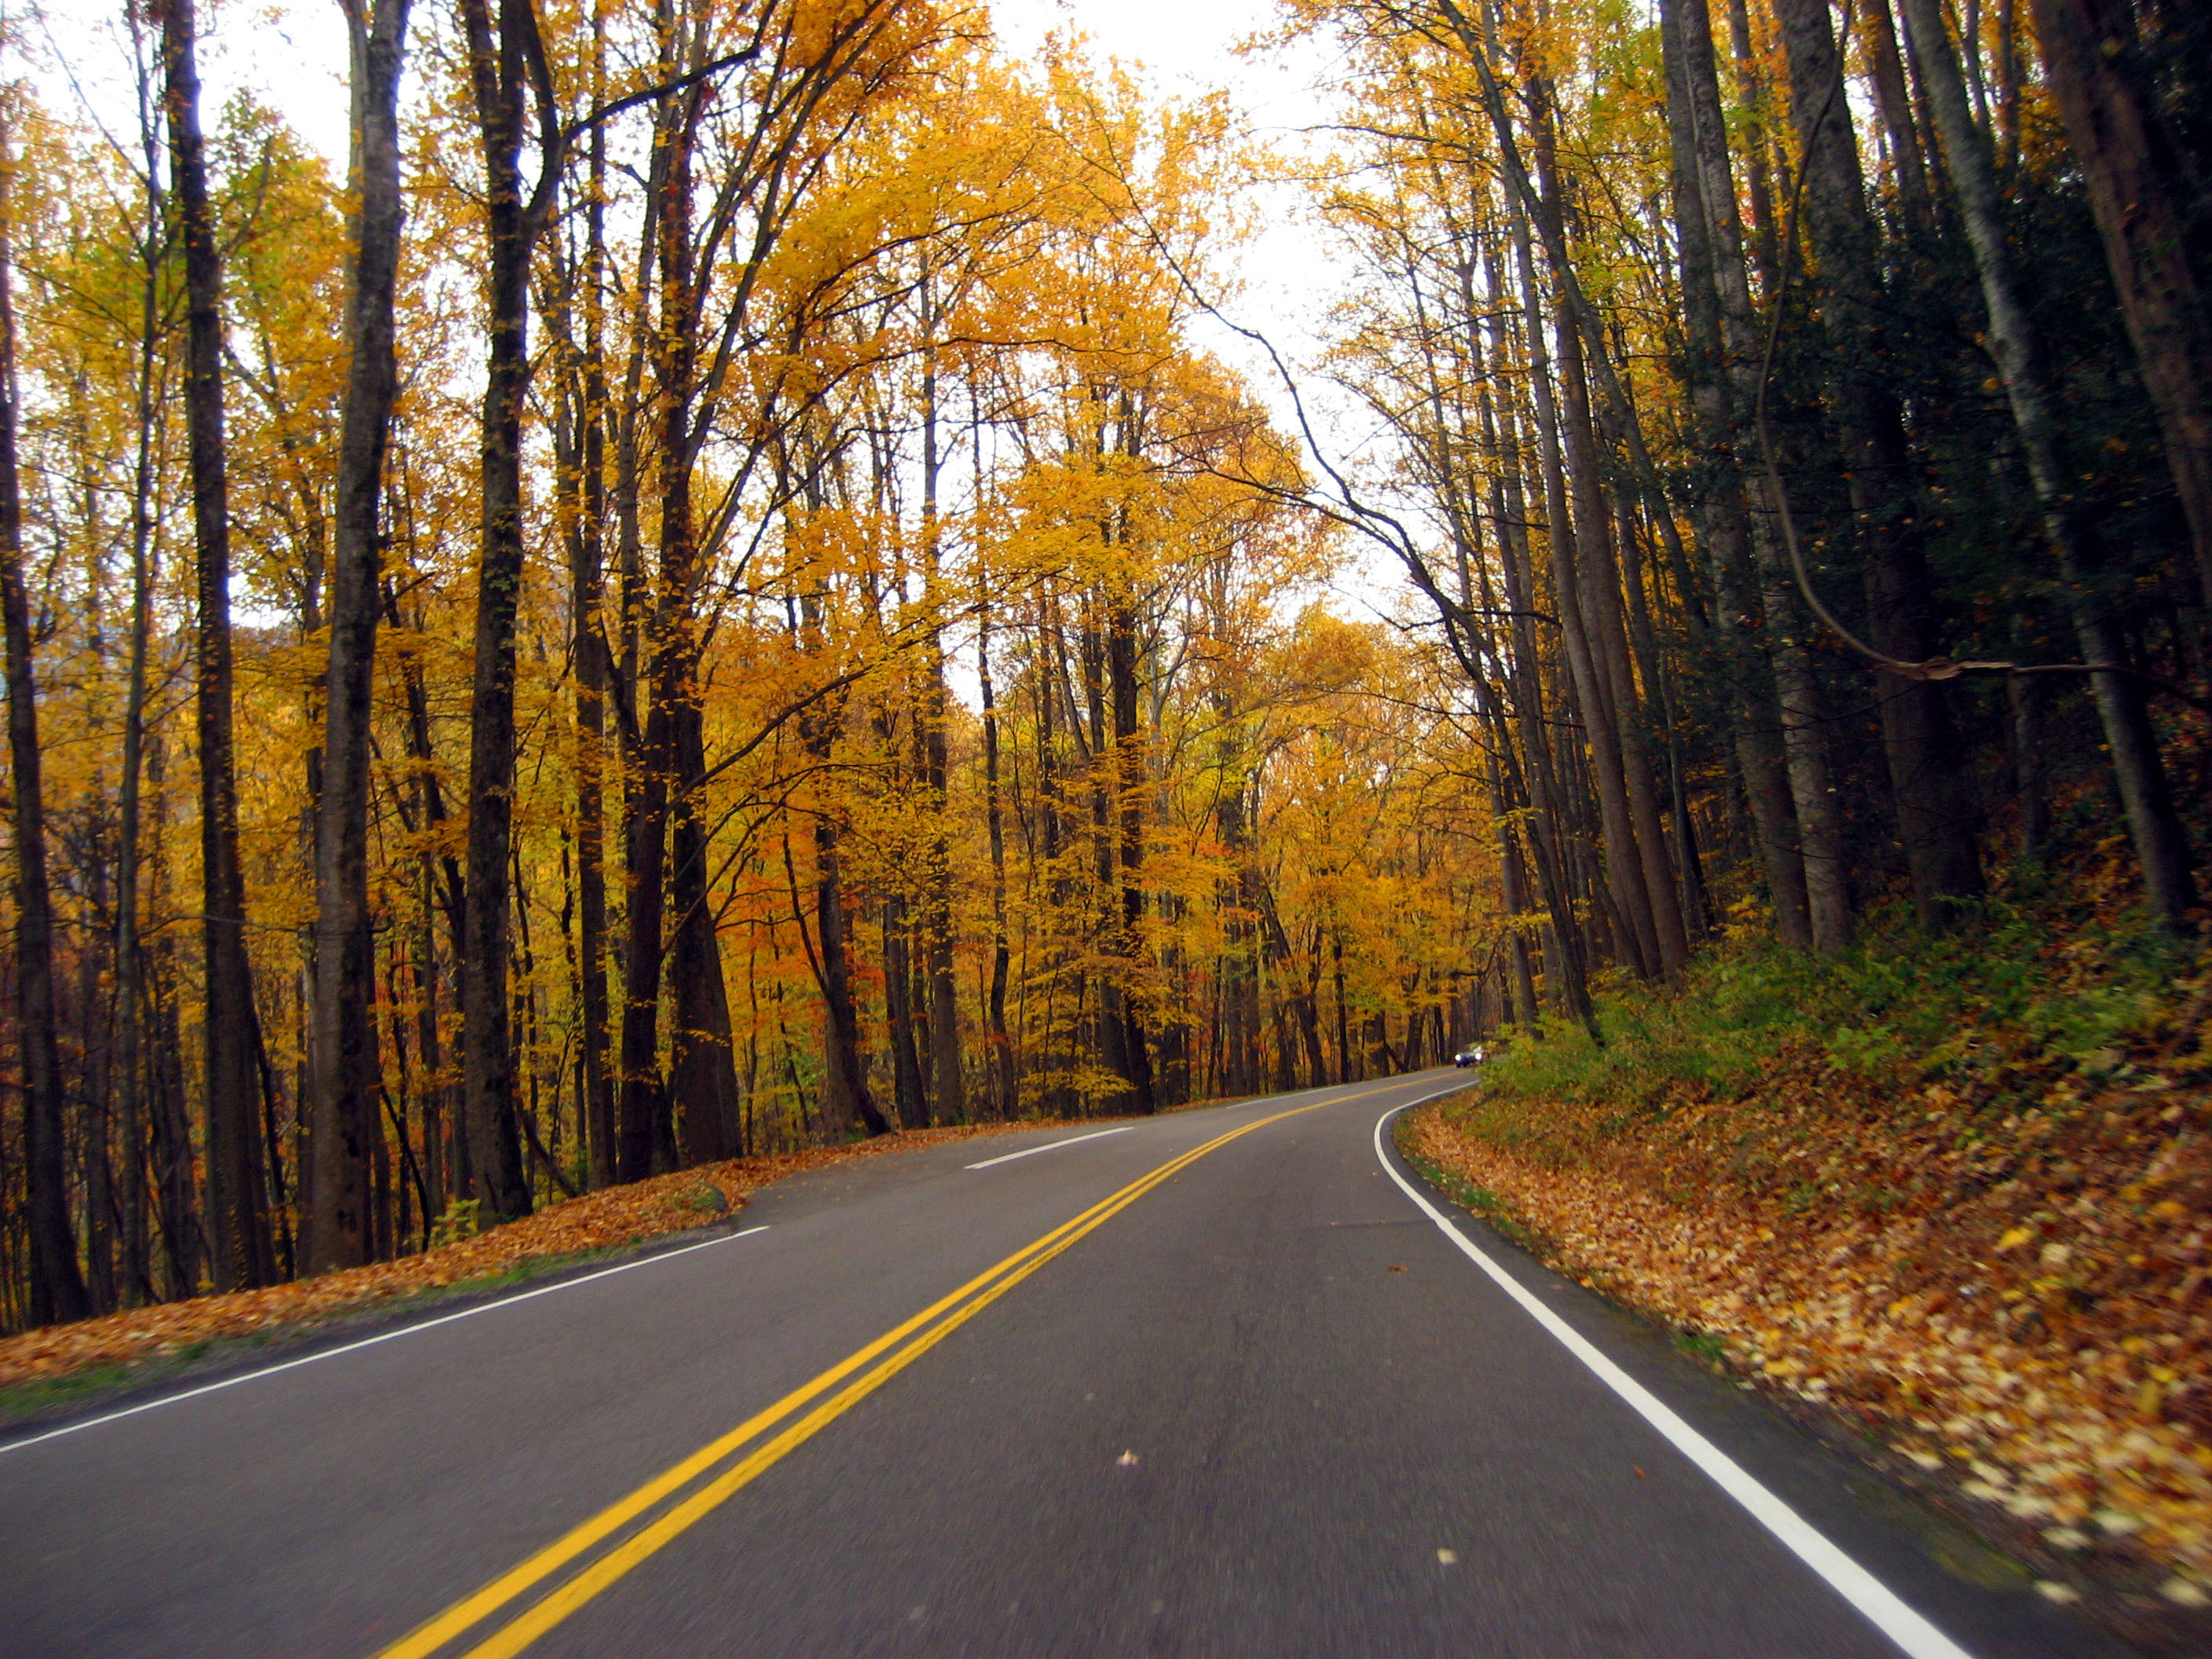 Autumn Roadway Between The Trees In Great Smoky Mountains